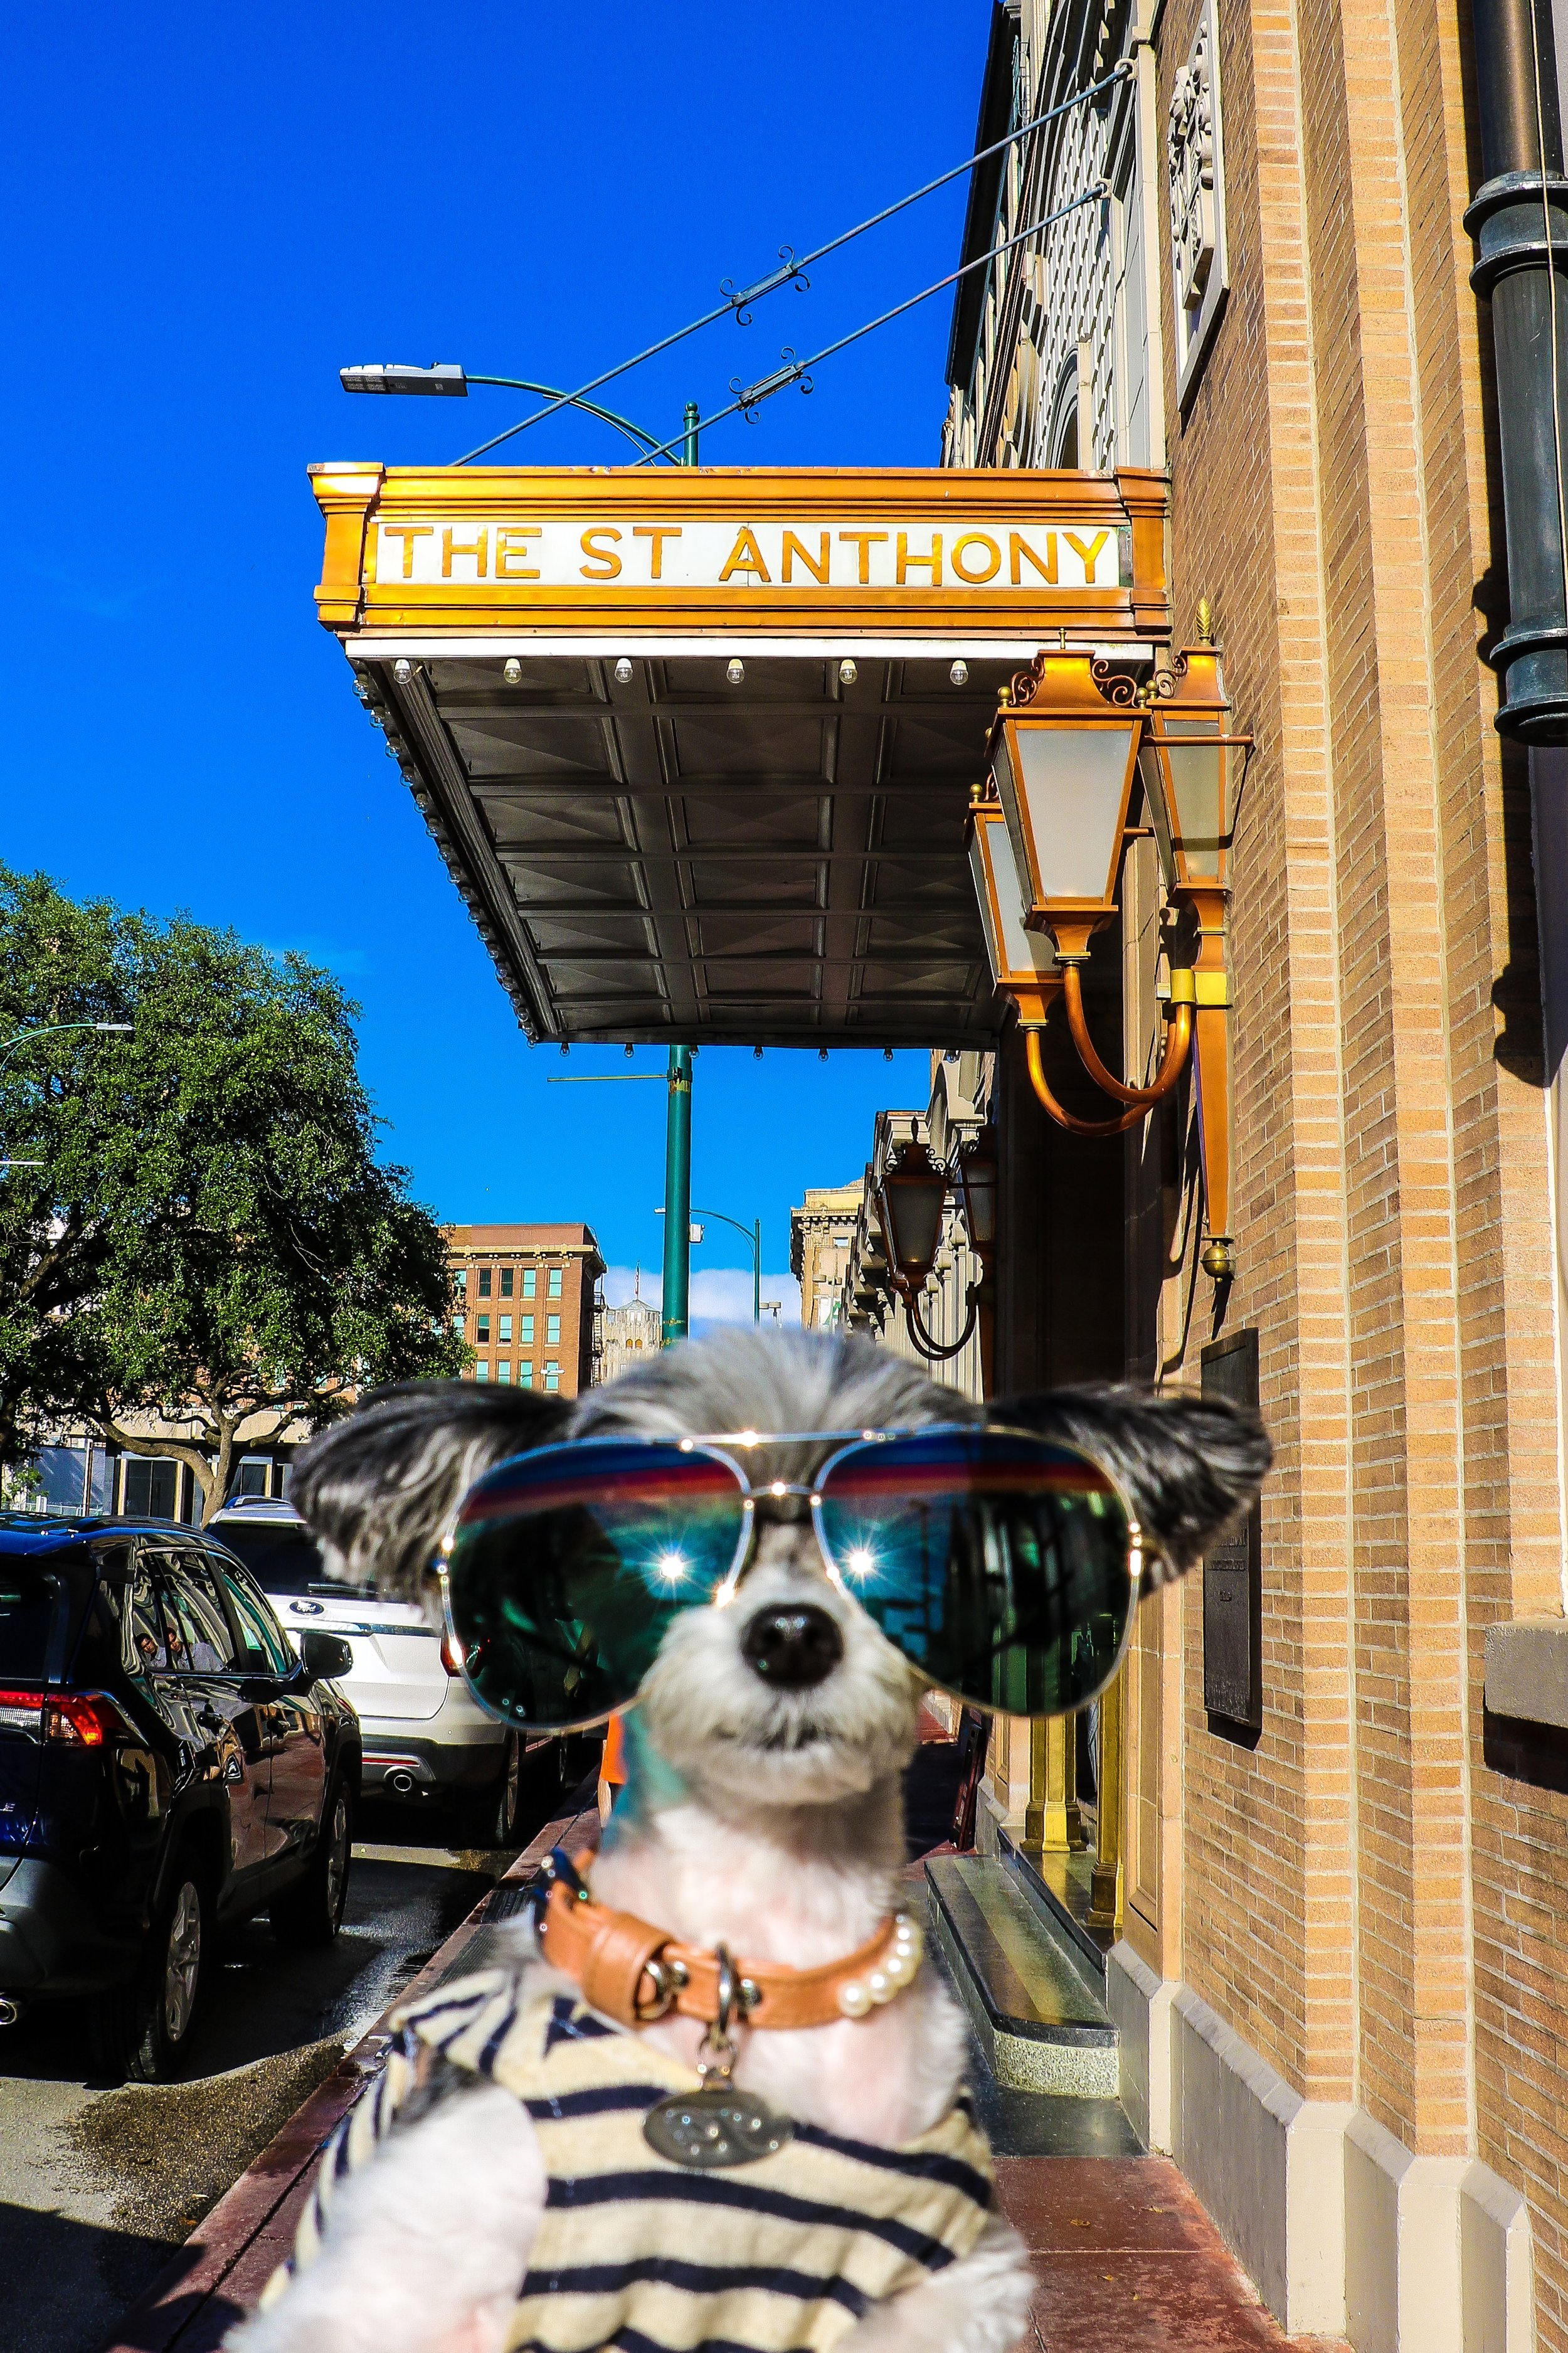 Tinkerbelle posing in front of The St. Anthony Hotel.